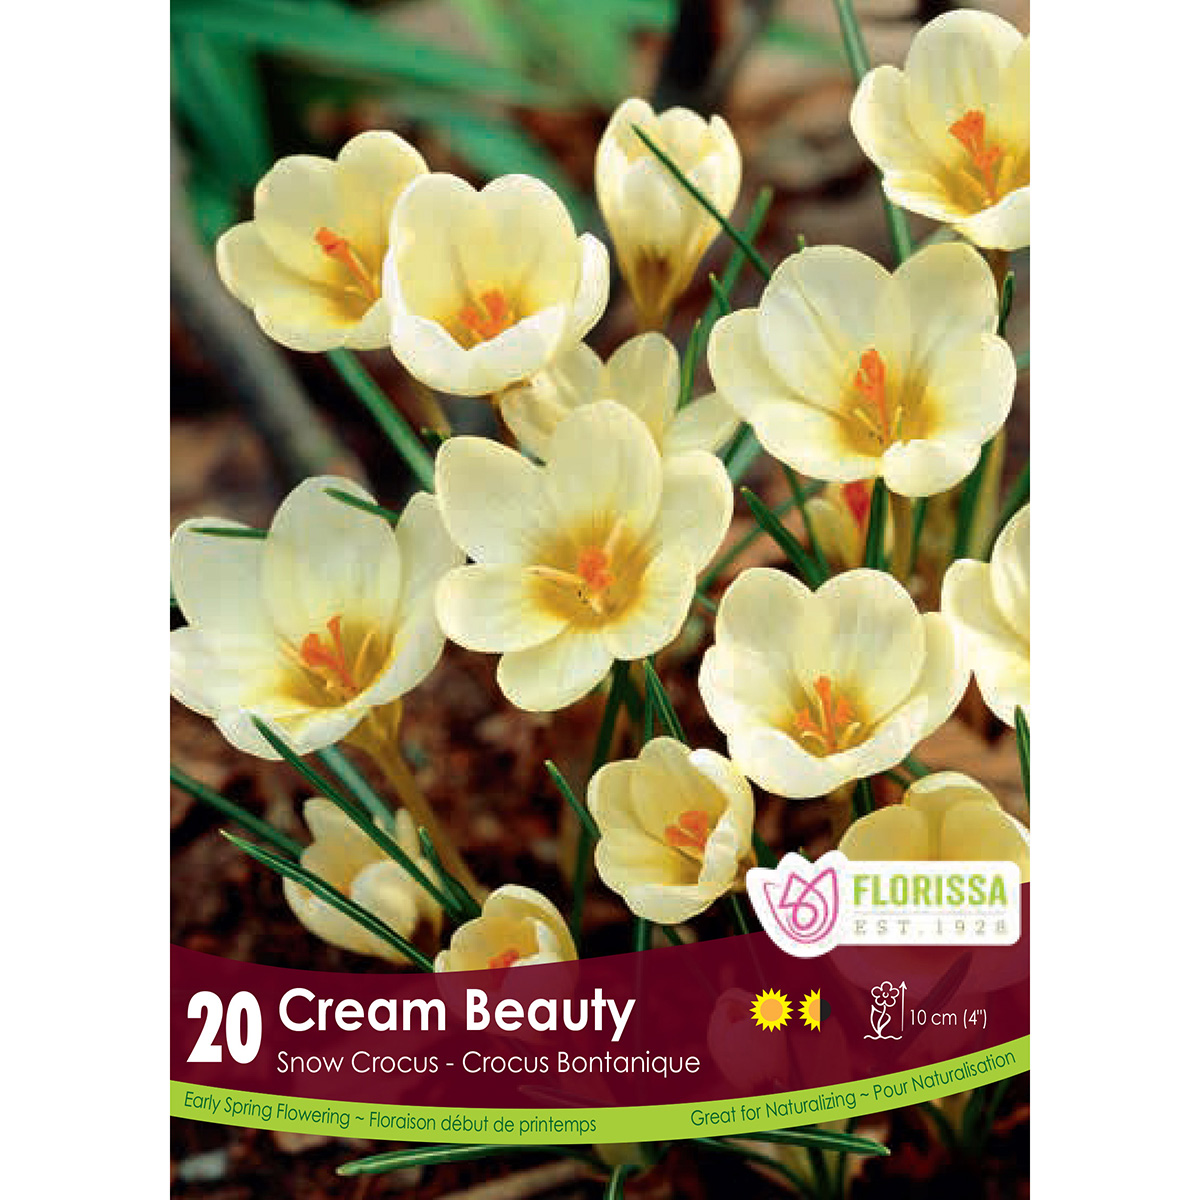 Bulb_Snowcrocus_Cream_Beauty.jpg